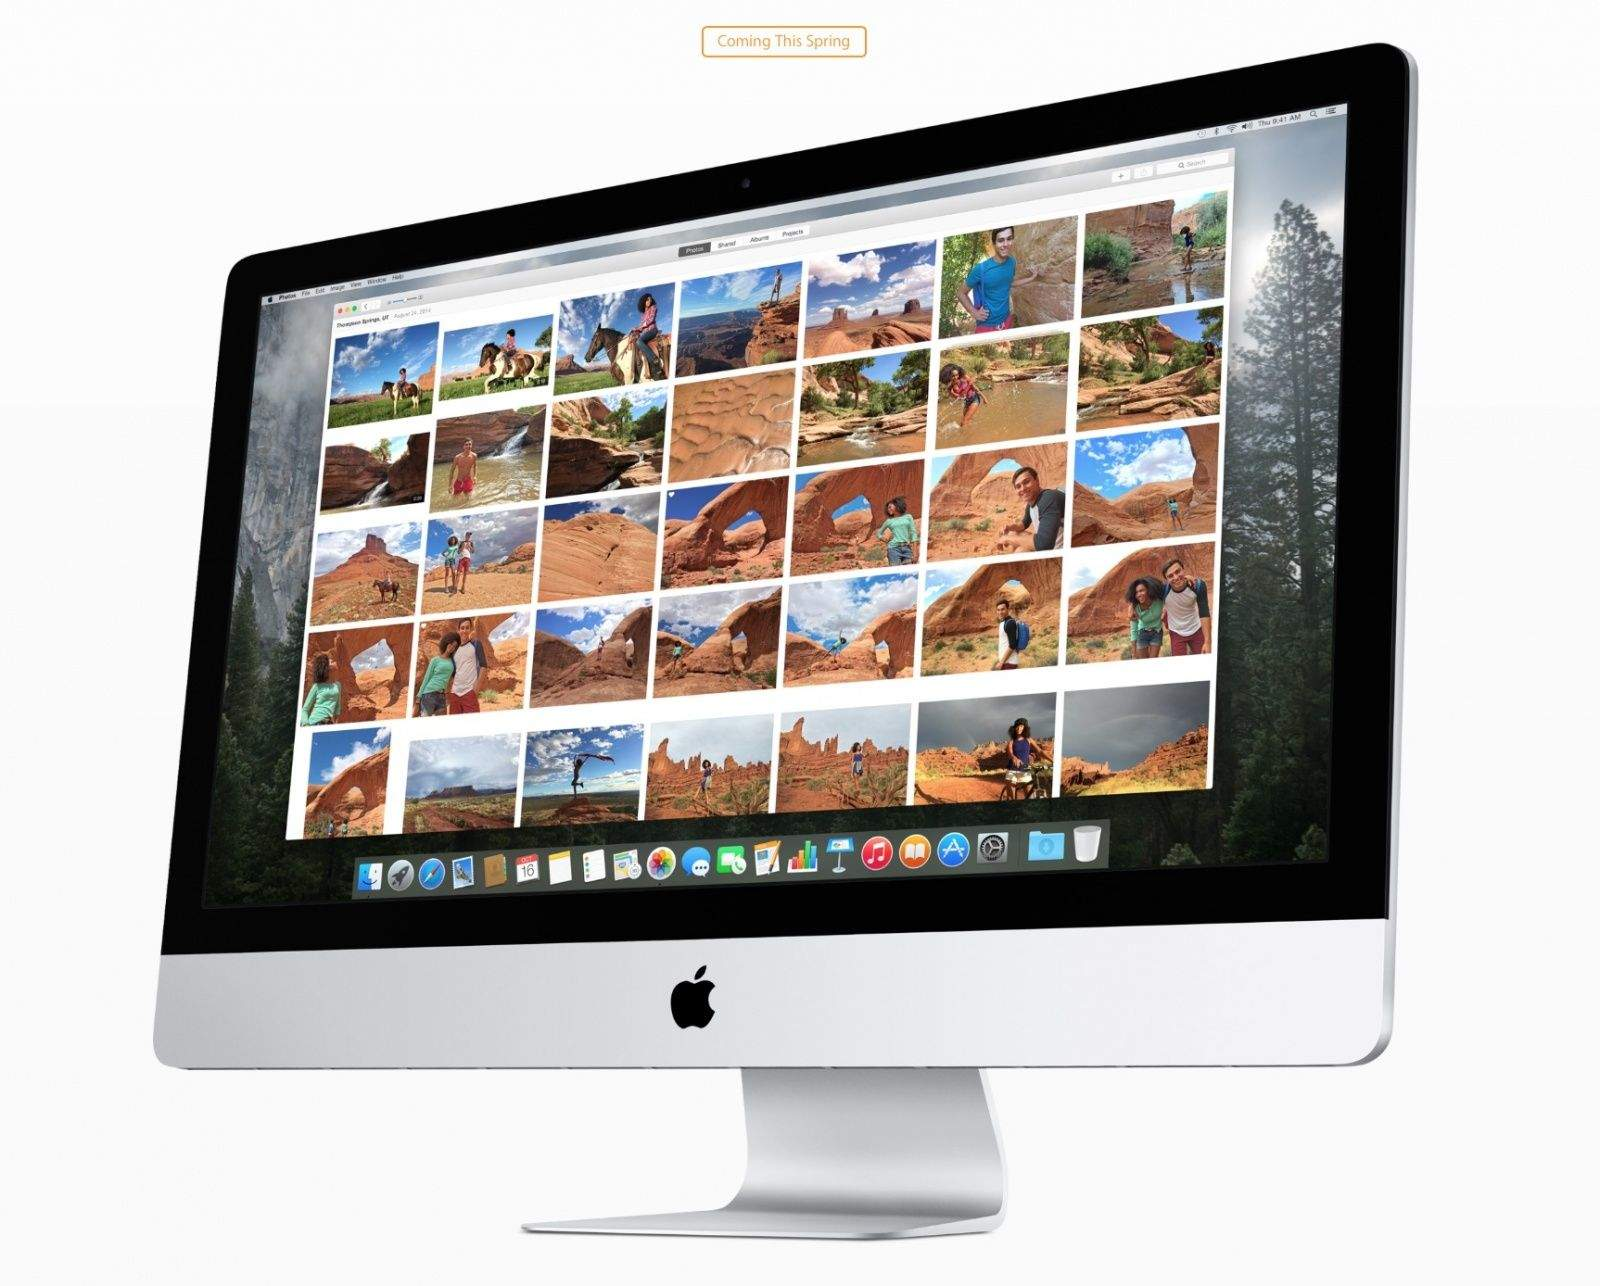 The new photo viewer in Photos for Mac. Now coming this spring. Photo: Apple